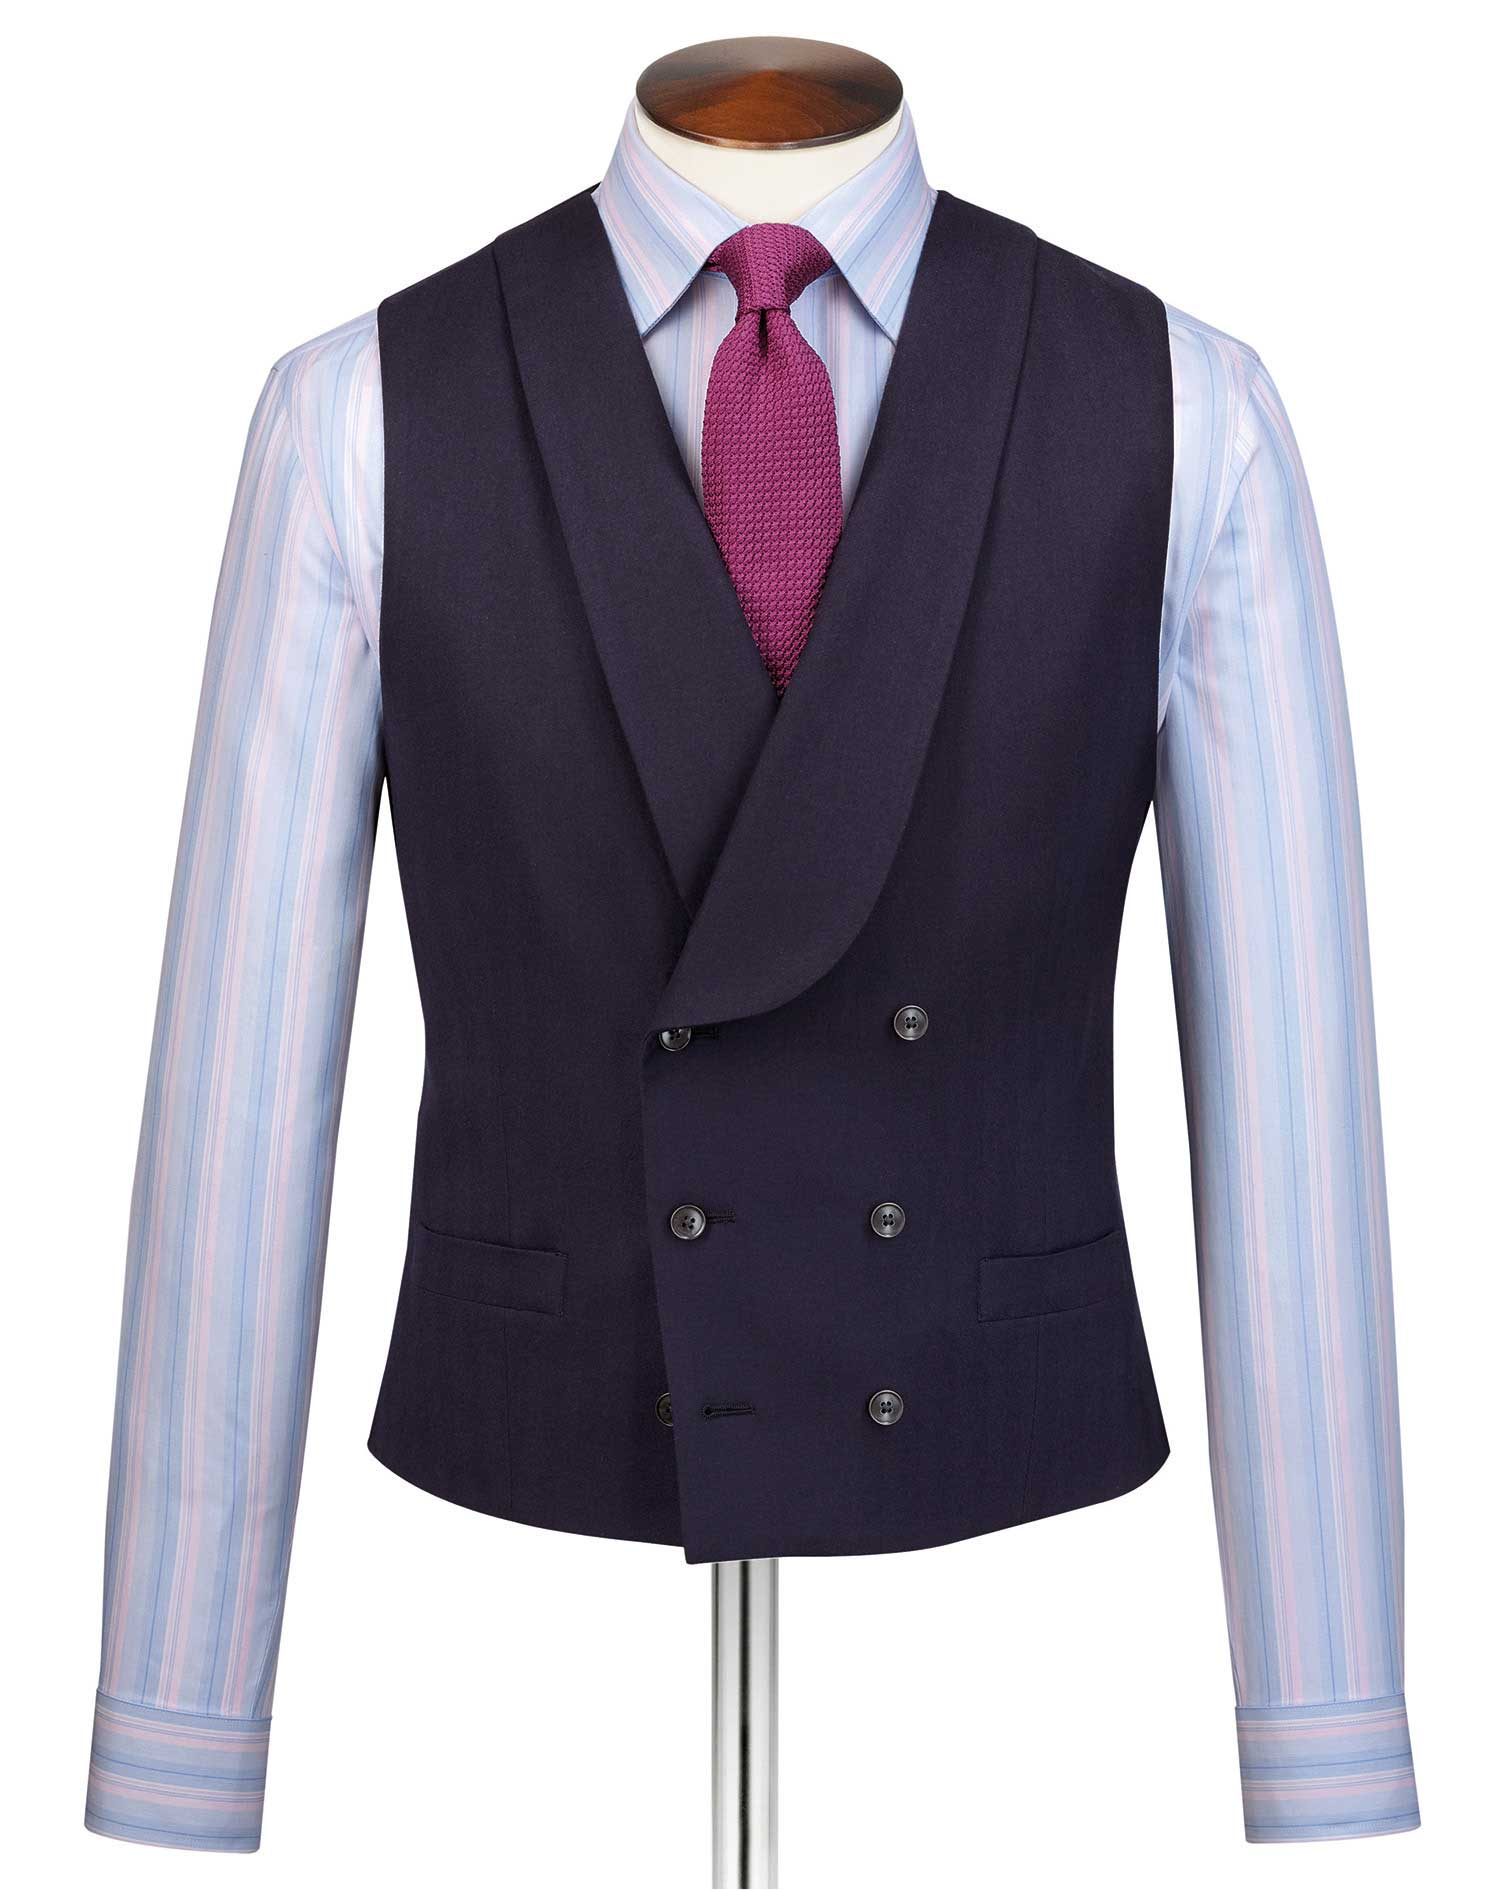 Men's Vintage Vests, Sweater Vests Navy Adjustable Fit British Luxury Suit Wool Waistcoat Size w36 by Charles Tyrwhitt £79.95 AT vintagedancer.com